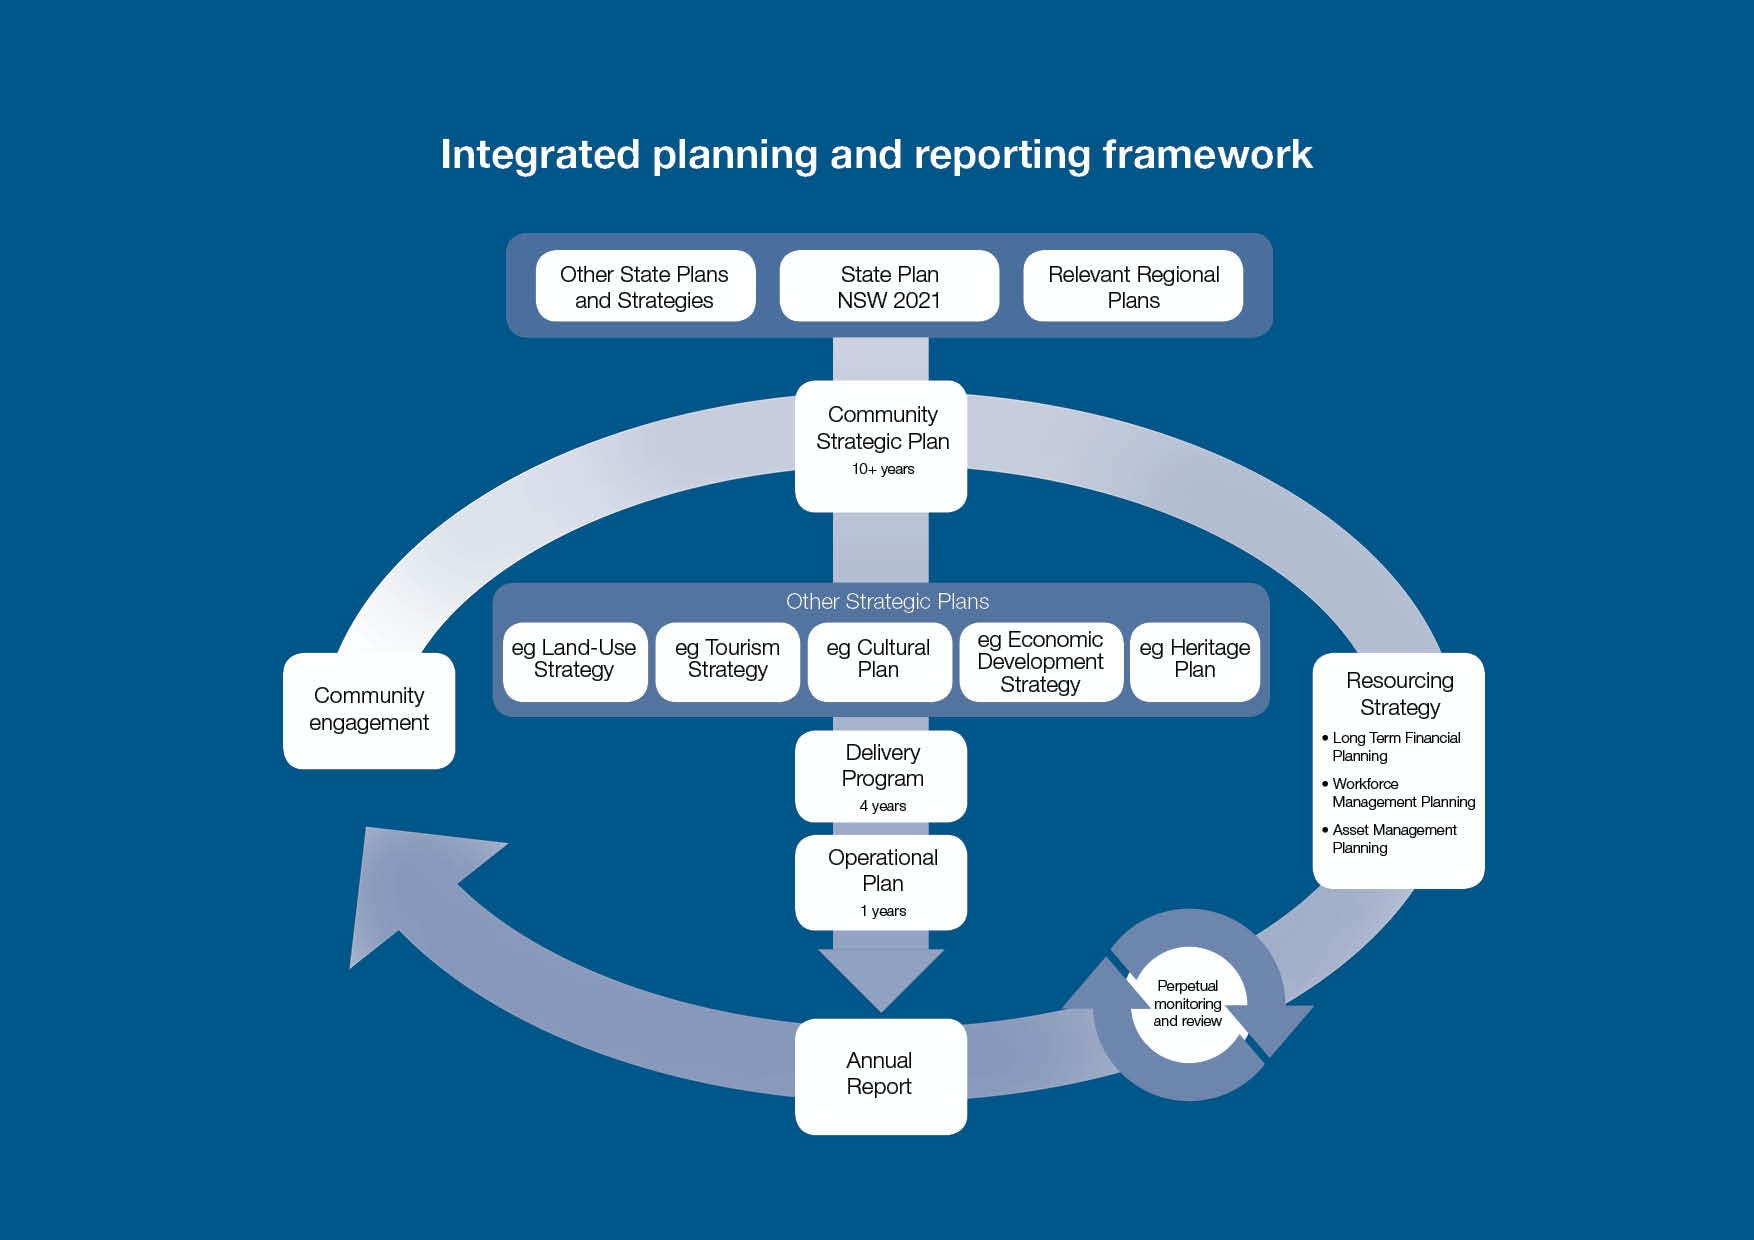 Council's Integrated Planning and Reporting Framework